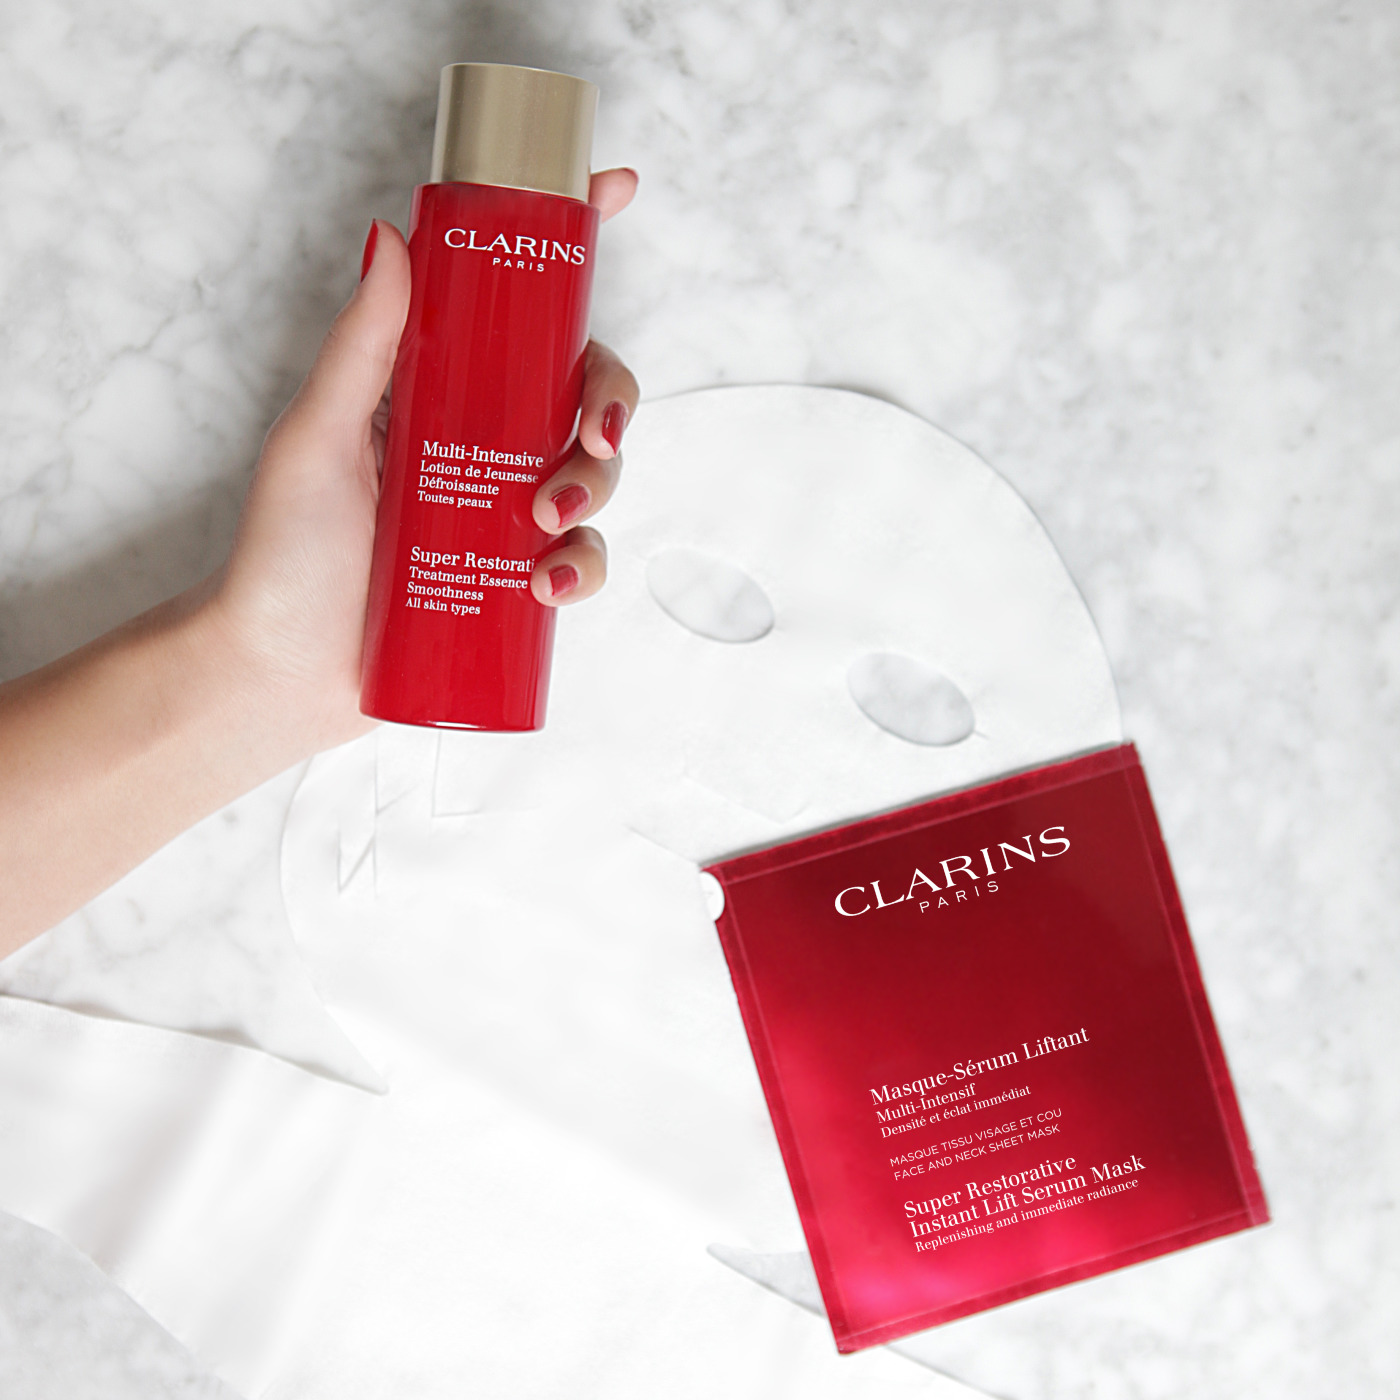 Super Restorative Treatment Essence by Clarins #7